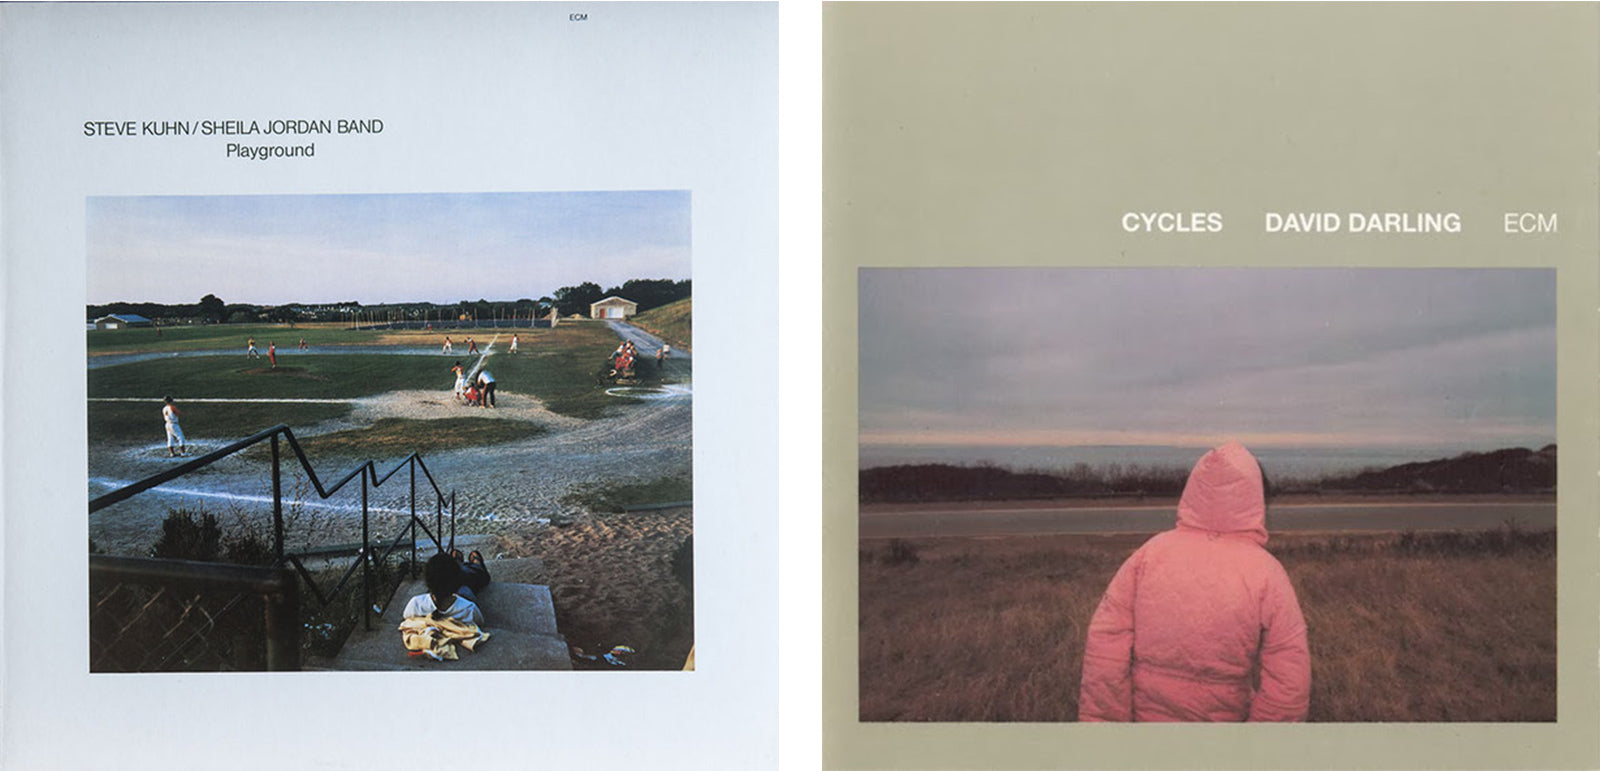 2 of our favourite ECM sleeves - Adsum